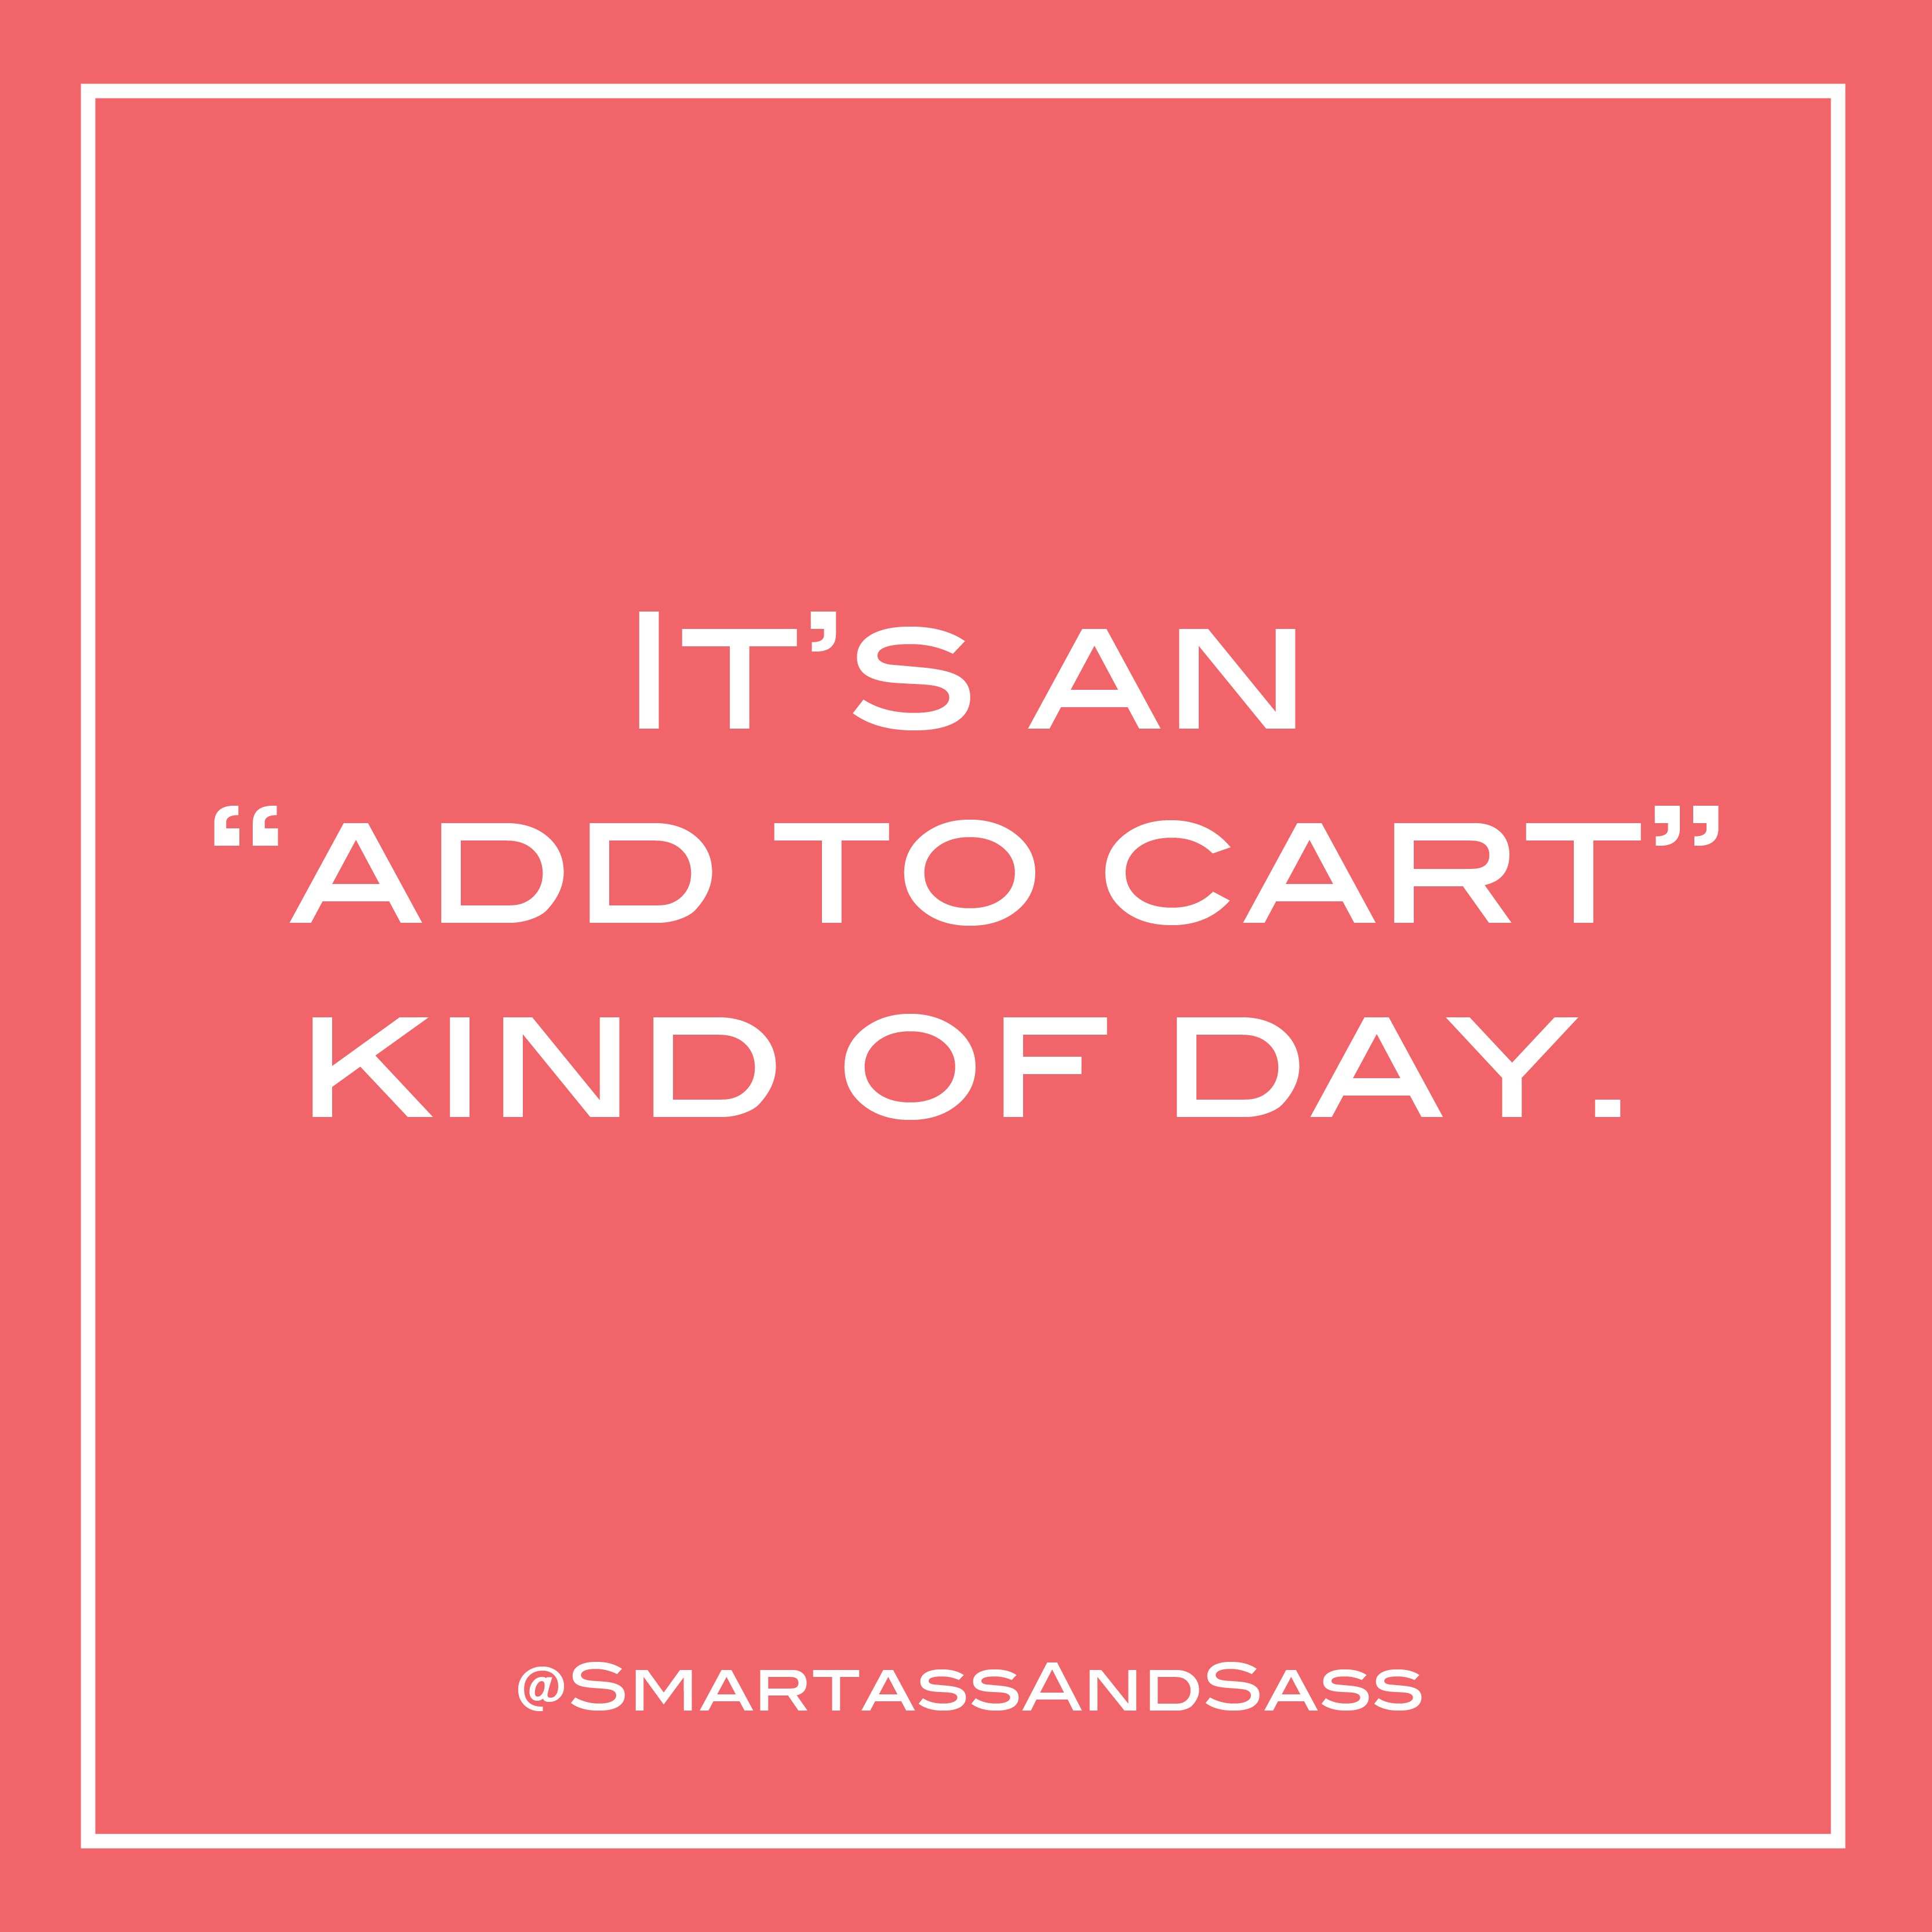 It S An Add To Cart Kind Of Day Funny Sarcastic Quote About Online Shopping Amazon Prime Shopping Quotes Funny Sarcastic Quotes Sarcastic Quotes Funny